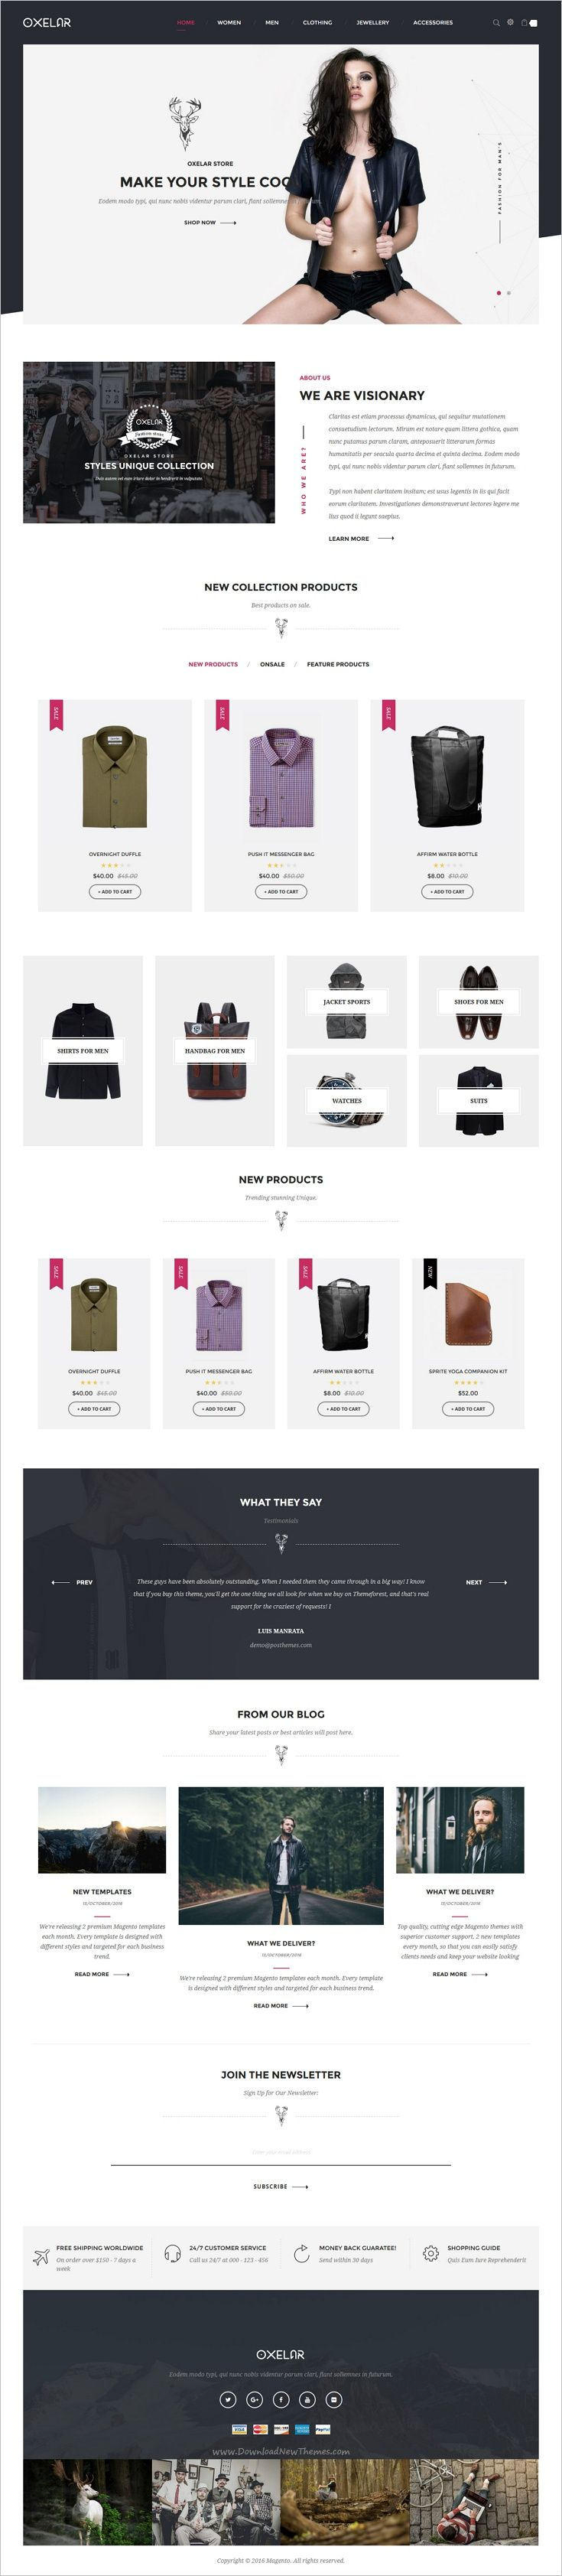 Oxelar is beautifully design multipurpose #Magento theme for #webdev stunning #fashion store #eCommerce website with 6 unique homepage layouts download now➩  https://themeforest.net/item/oxelar-multipurpose-responsive-magento-theme/18734444?ref=Datasata